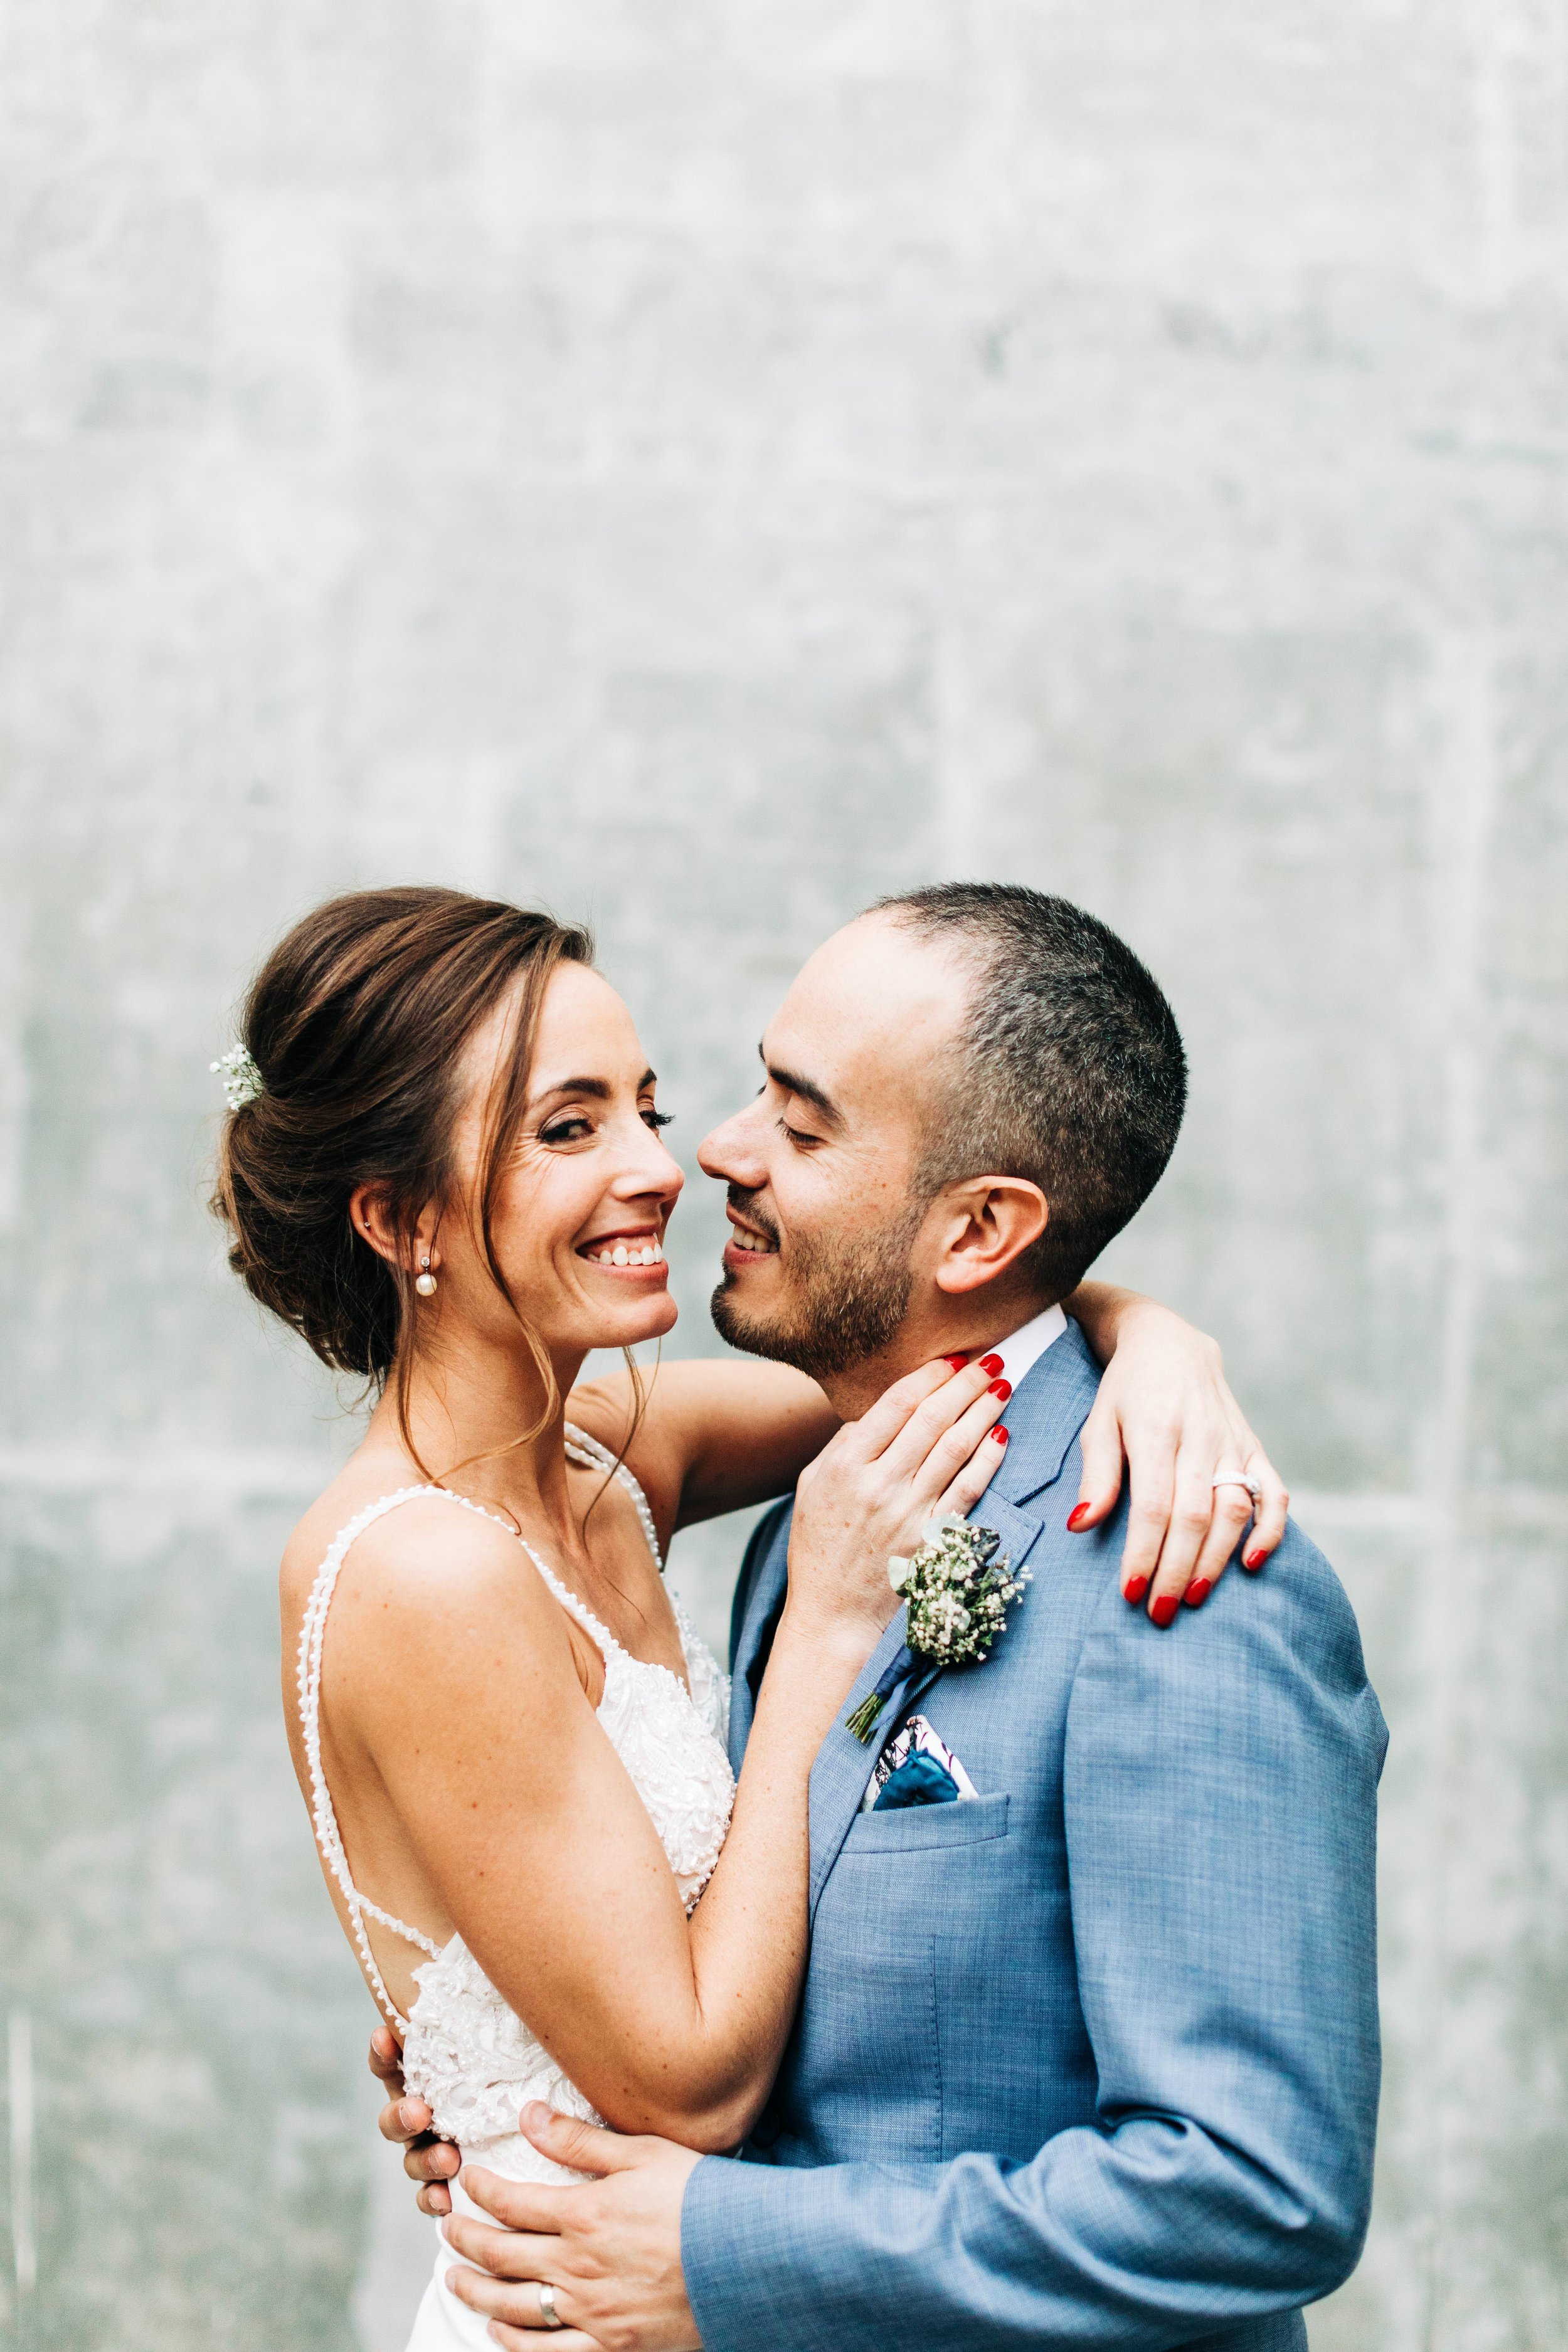 Long Beach bride and groom get married at Howl